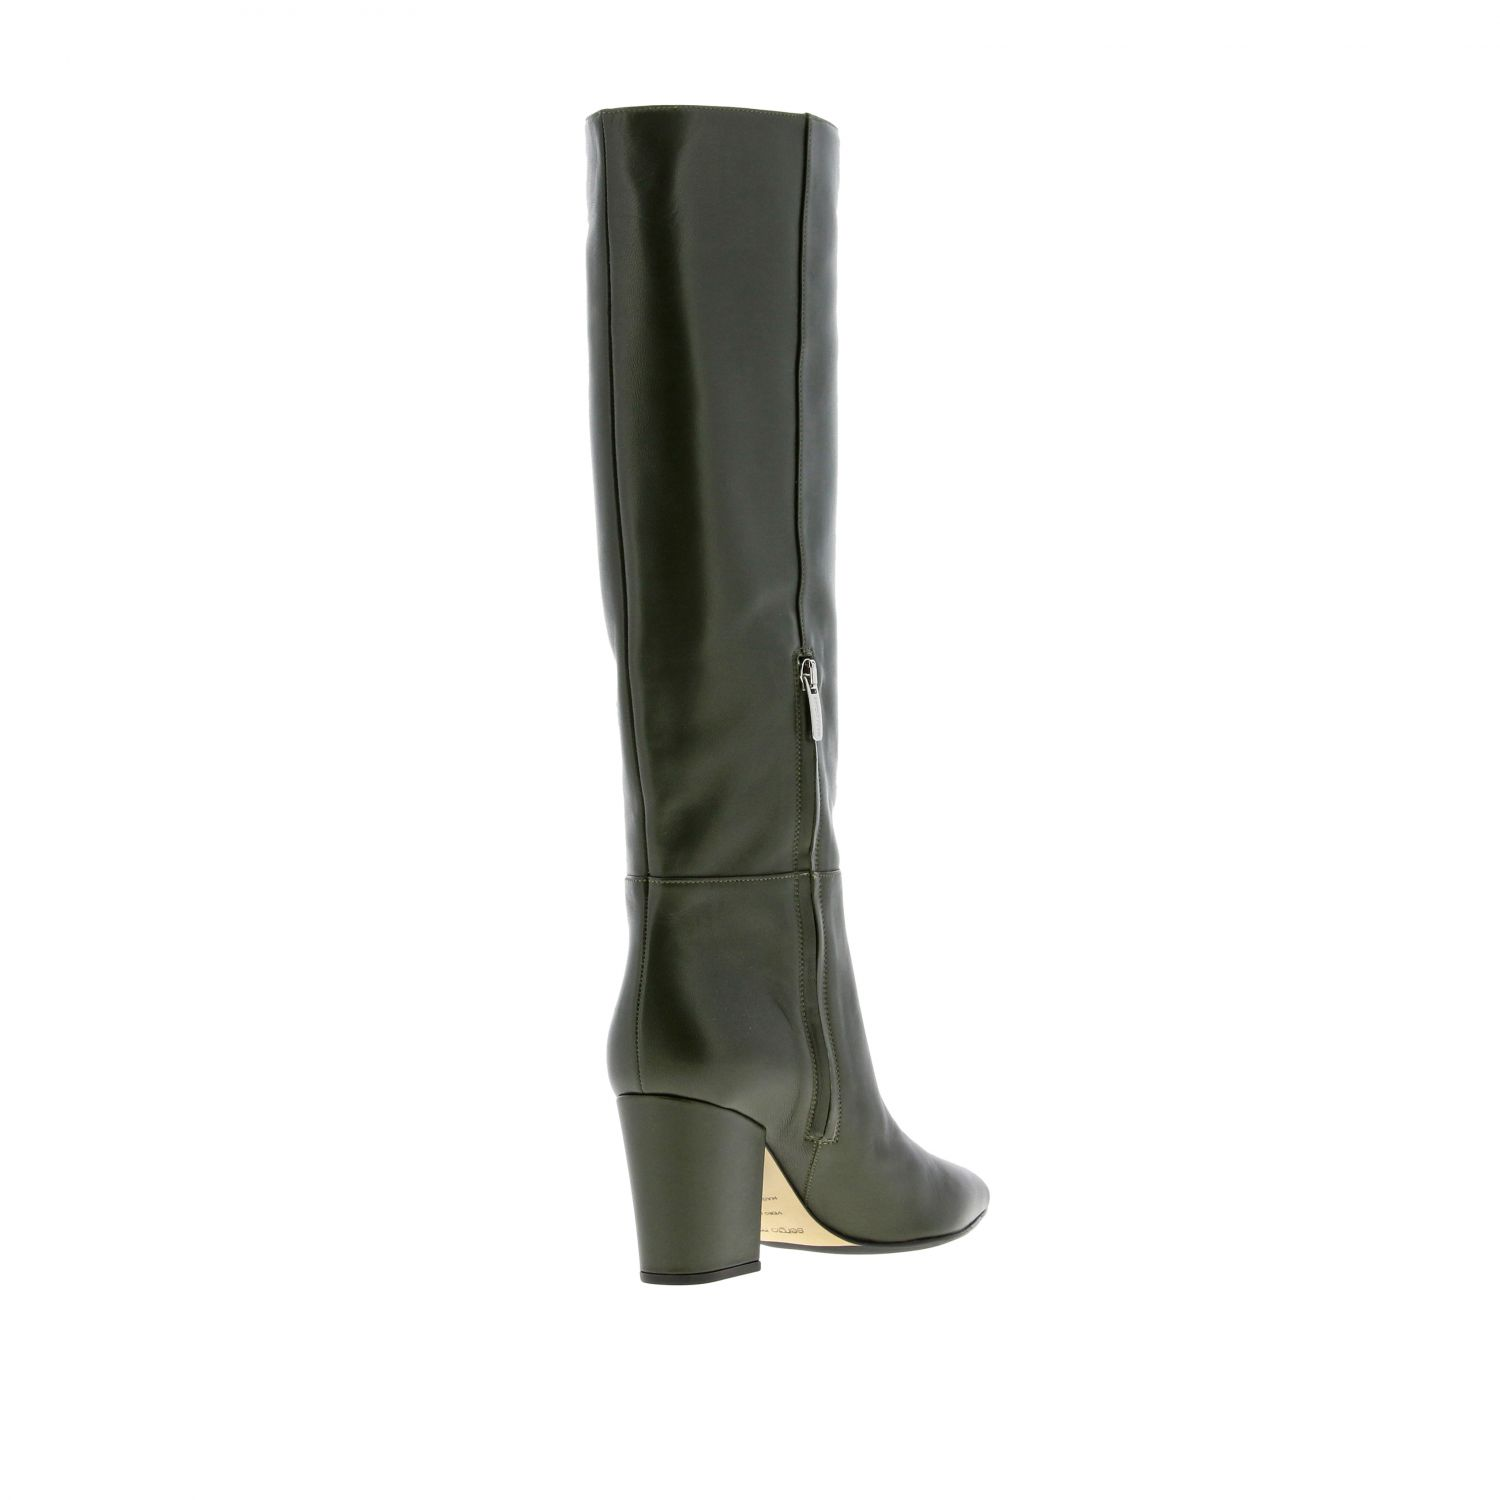 Boots women Sergio Rossi green 4